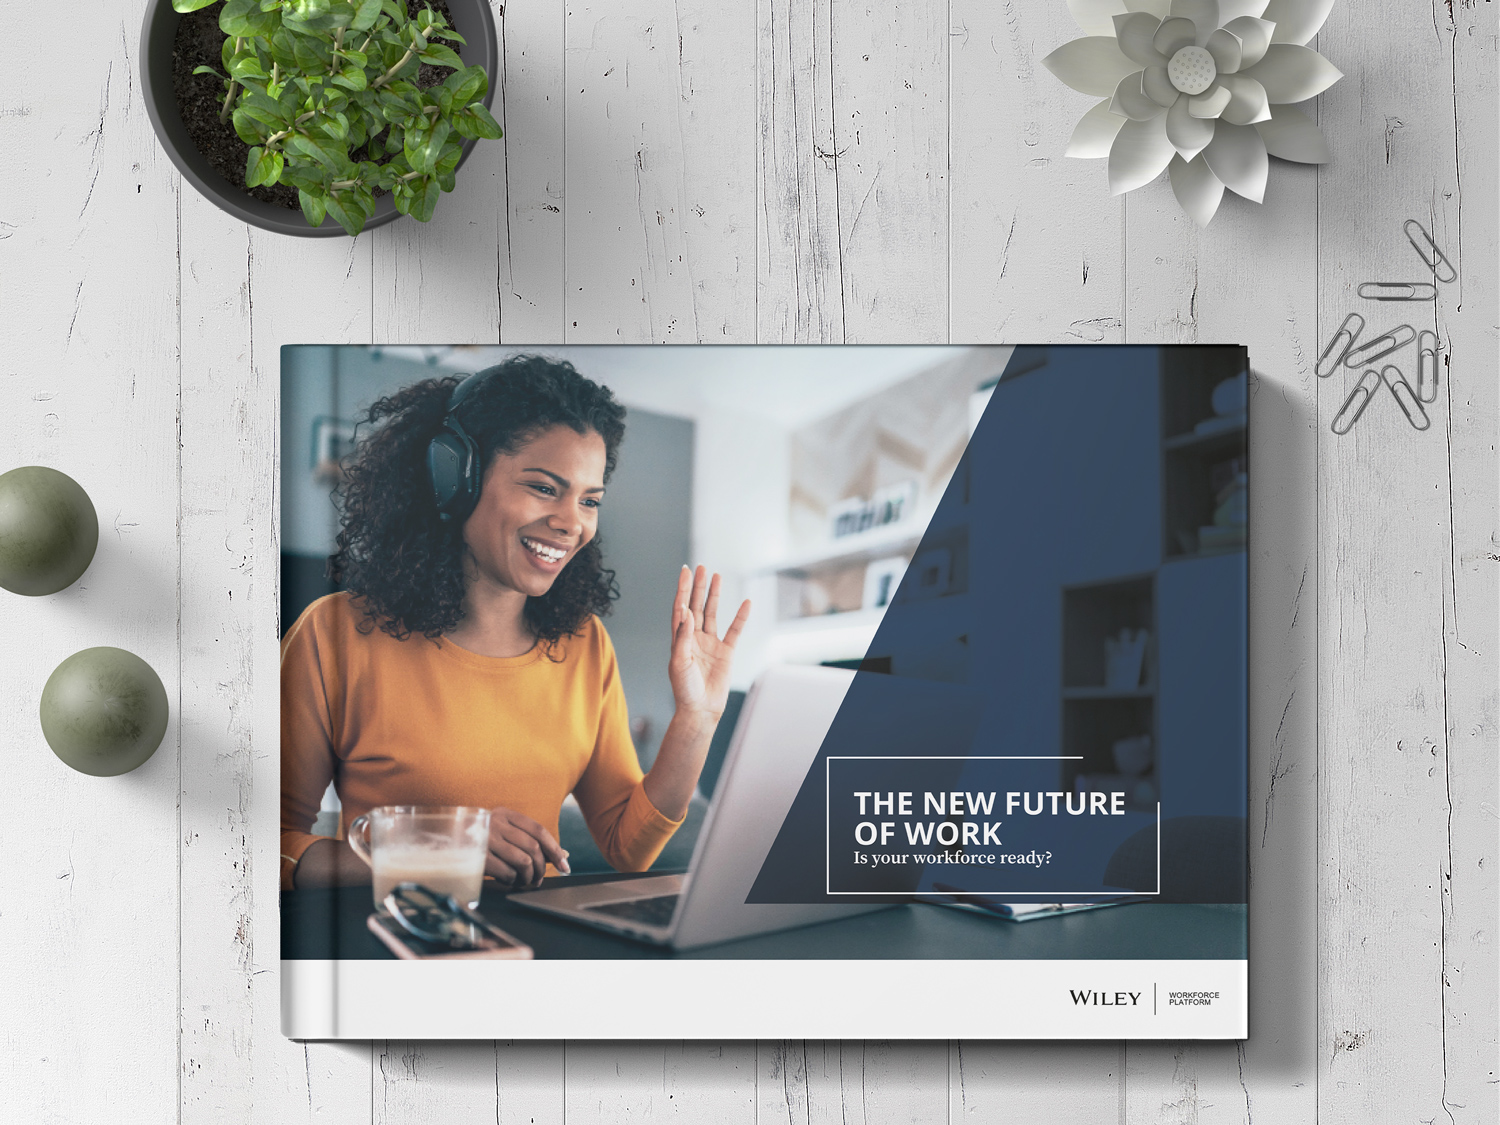 Wiley New Future of Work eBook